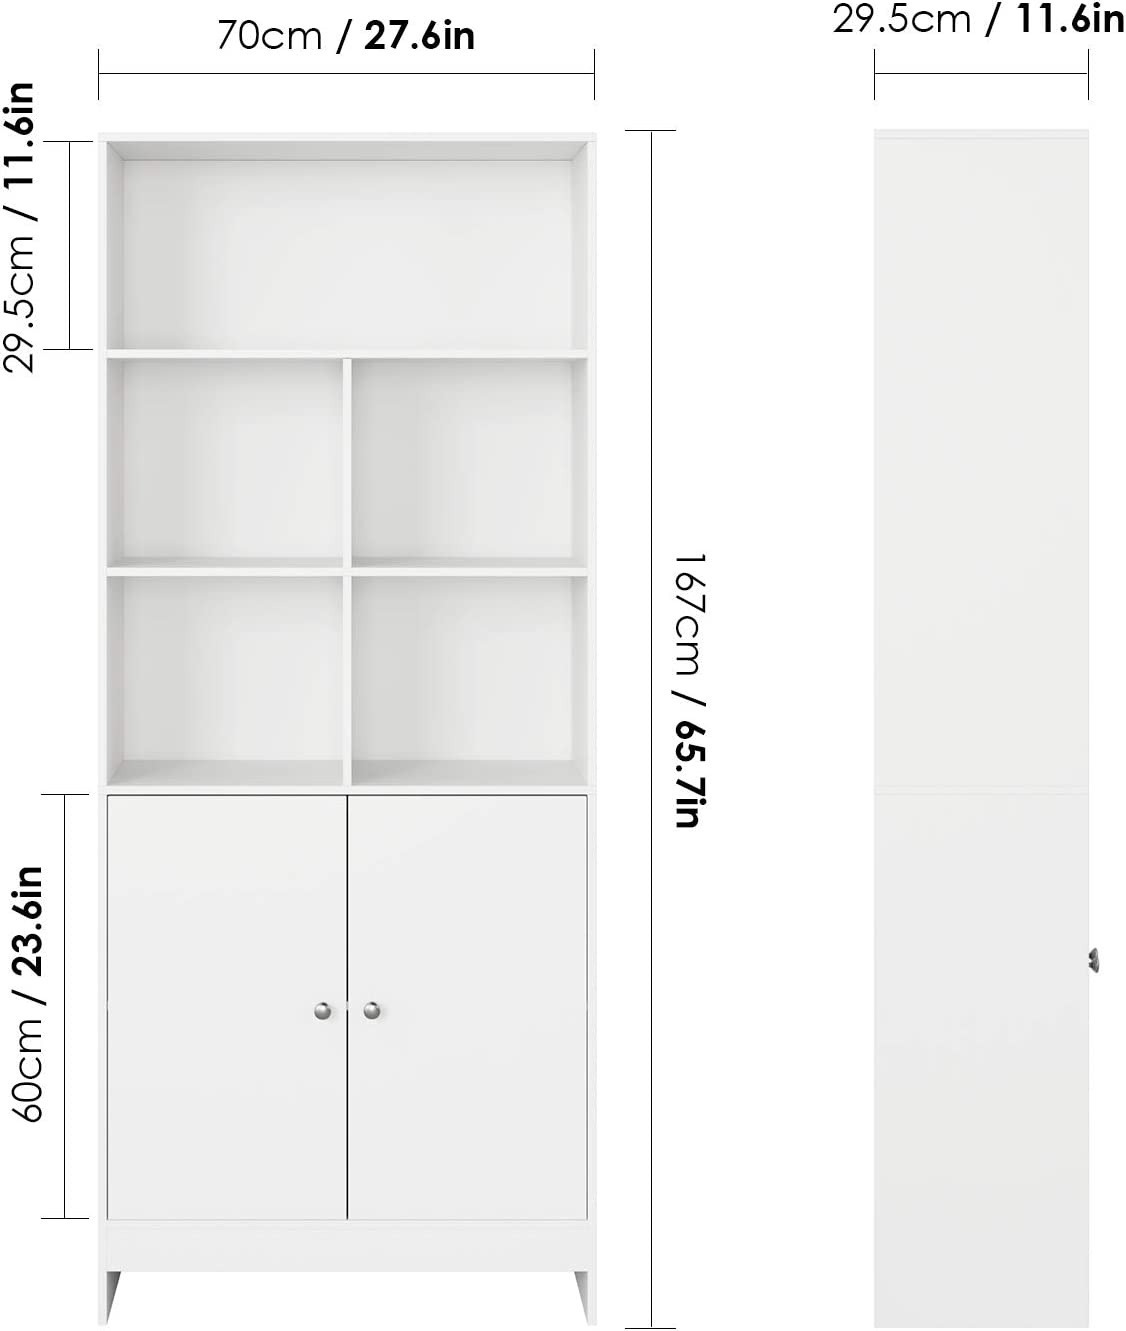 Homfa Bookcase with Doors Wooden Bookshelf Storage Unit 3 Tiers 4 Cubes 2 Doors Tall Display Shelf Free Standing Storage Shelves Home Office White 70x29.7x167cm